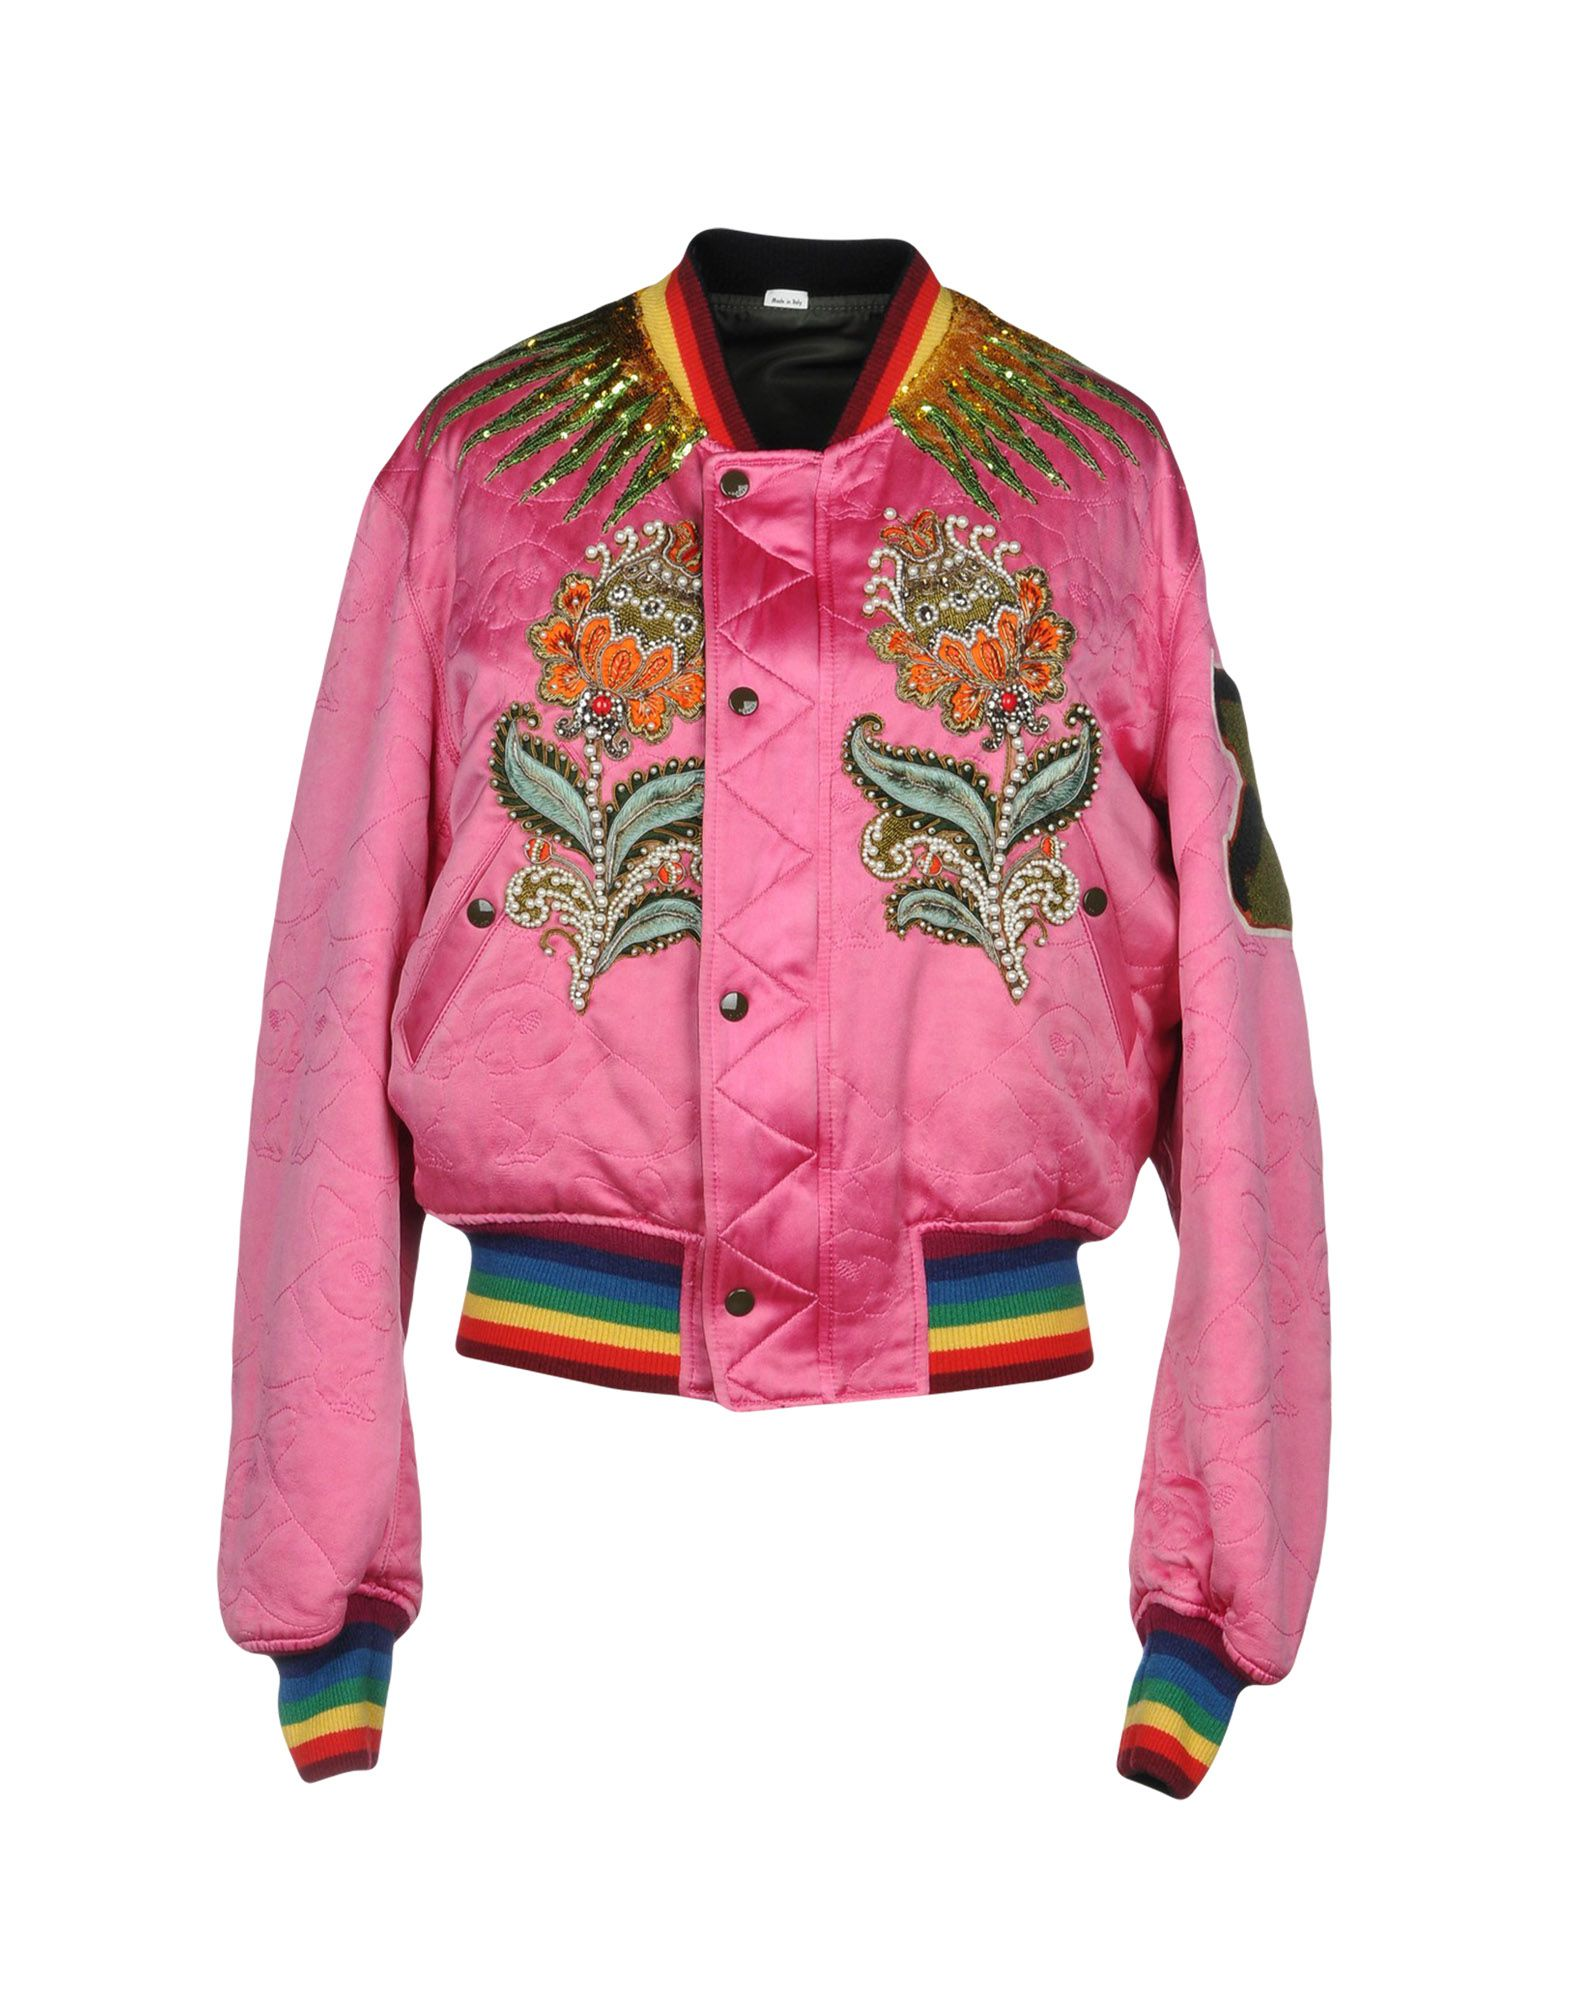 74e4c6704 Buy gucci clothing for women - Best women's gucci clothing shop - Cools.com